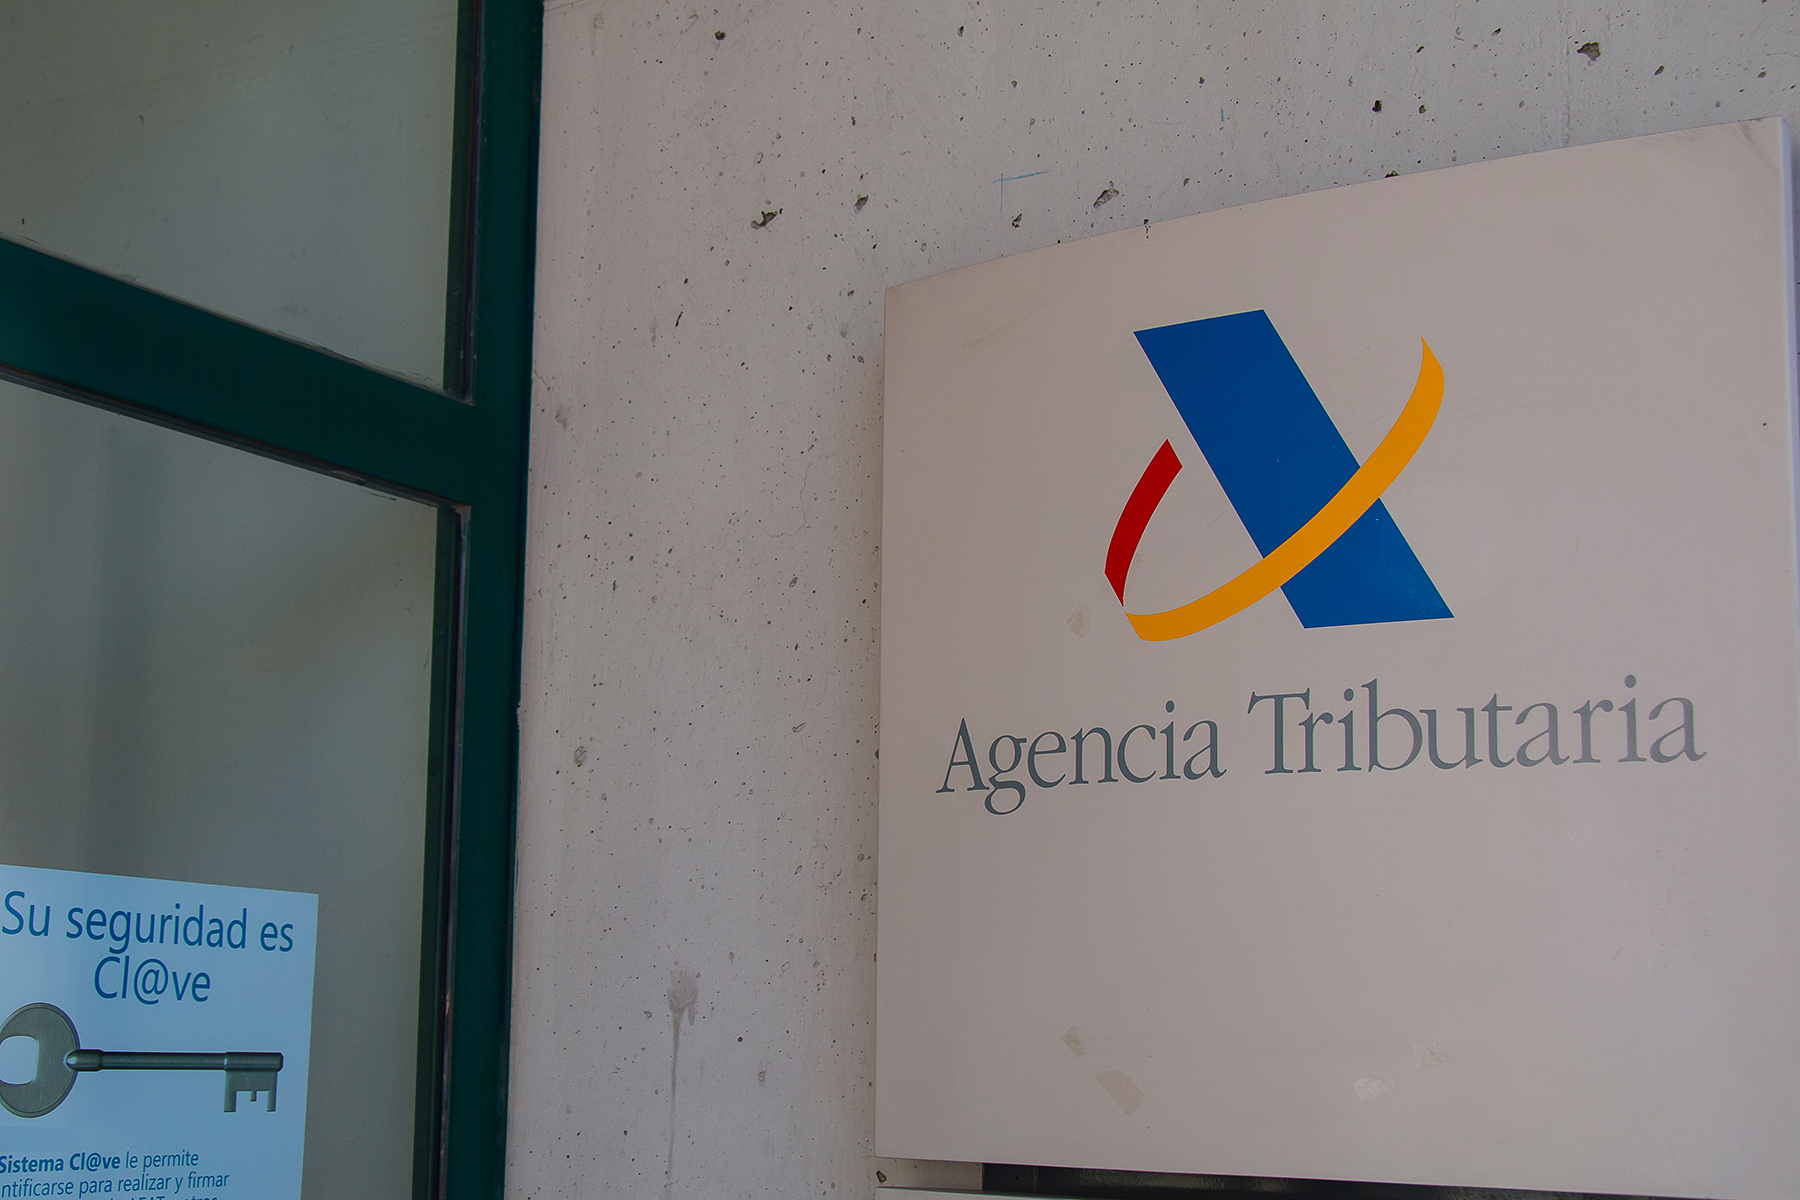 Agencia Tributaria office in Madrid